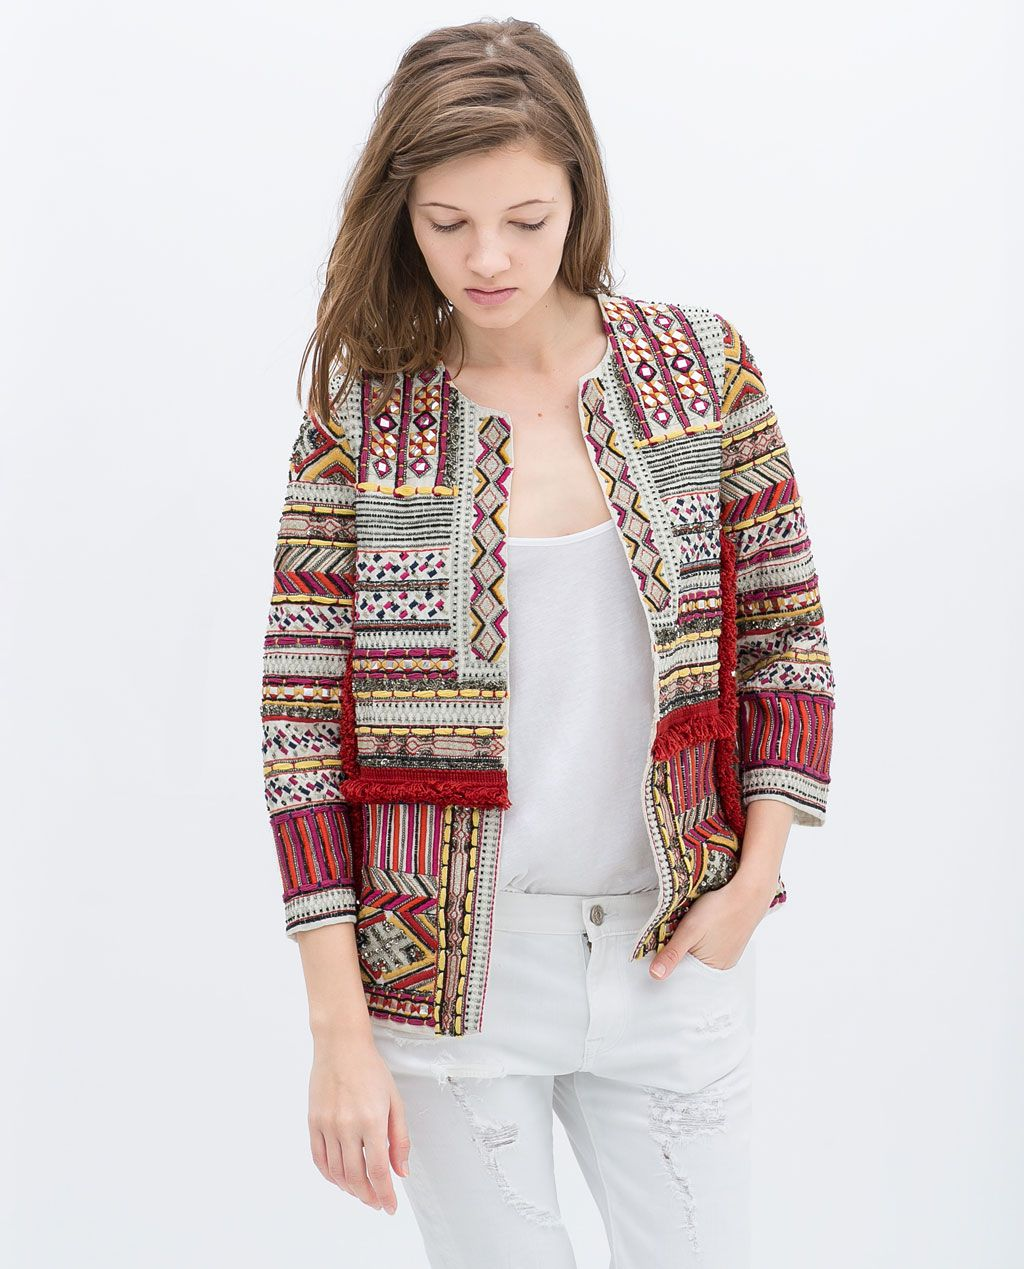 657a27b7 EMBROIDERED JACKET WITH BEADS from Zara | wanted in 2019 | Zara ...